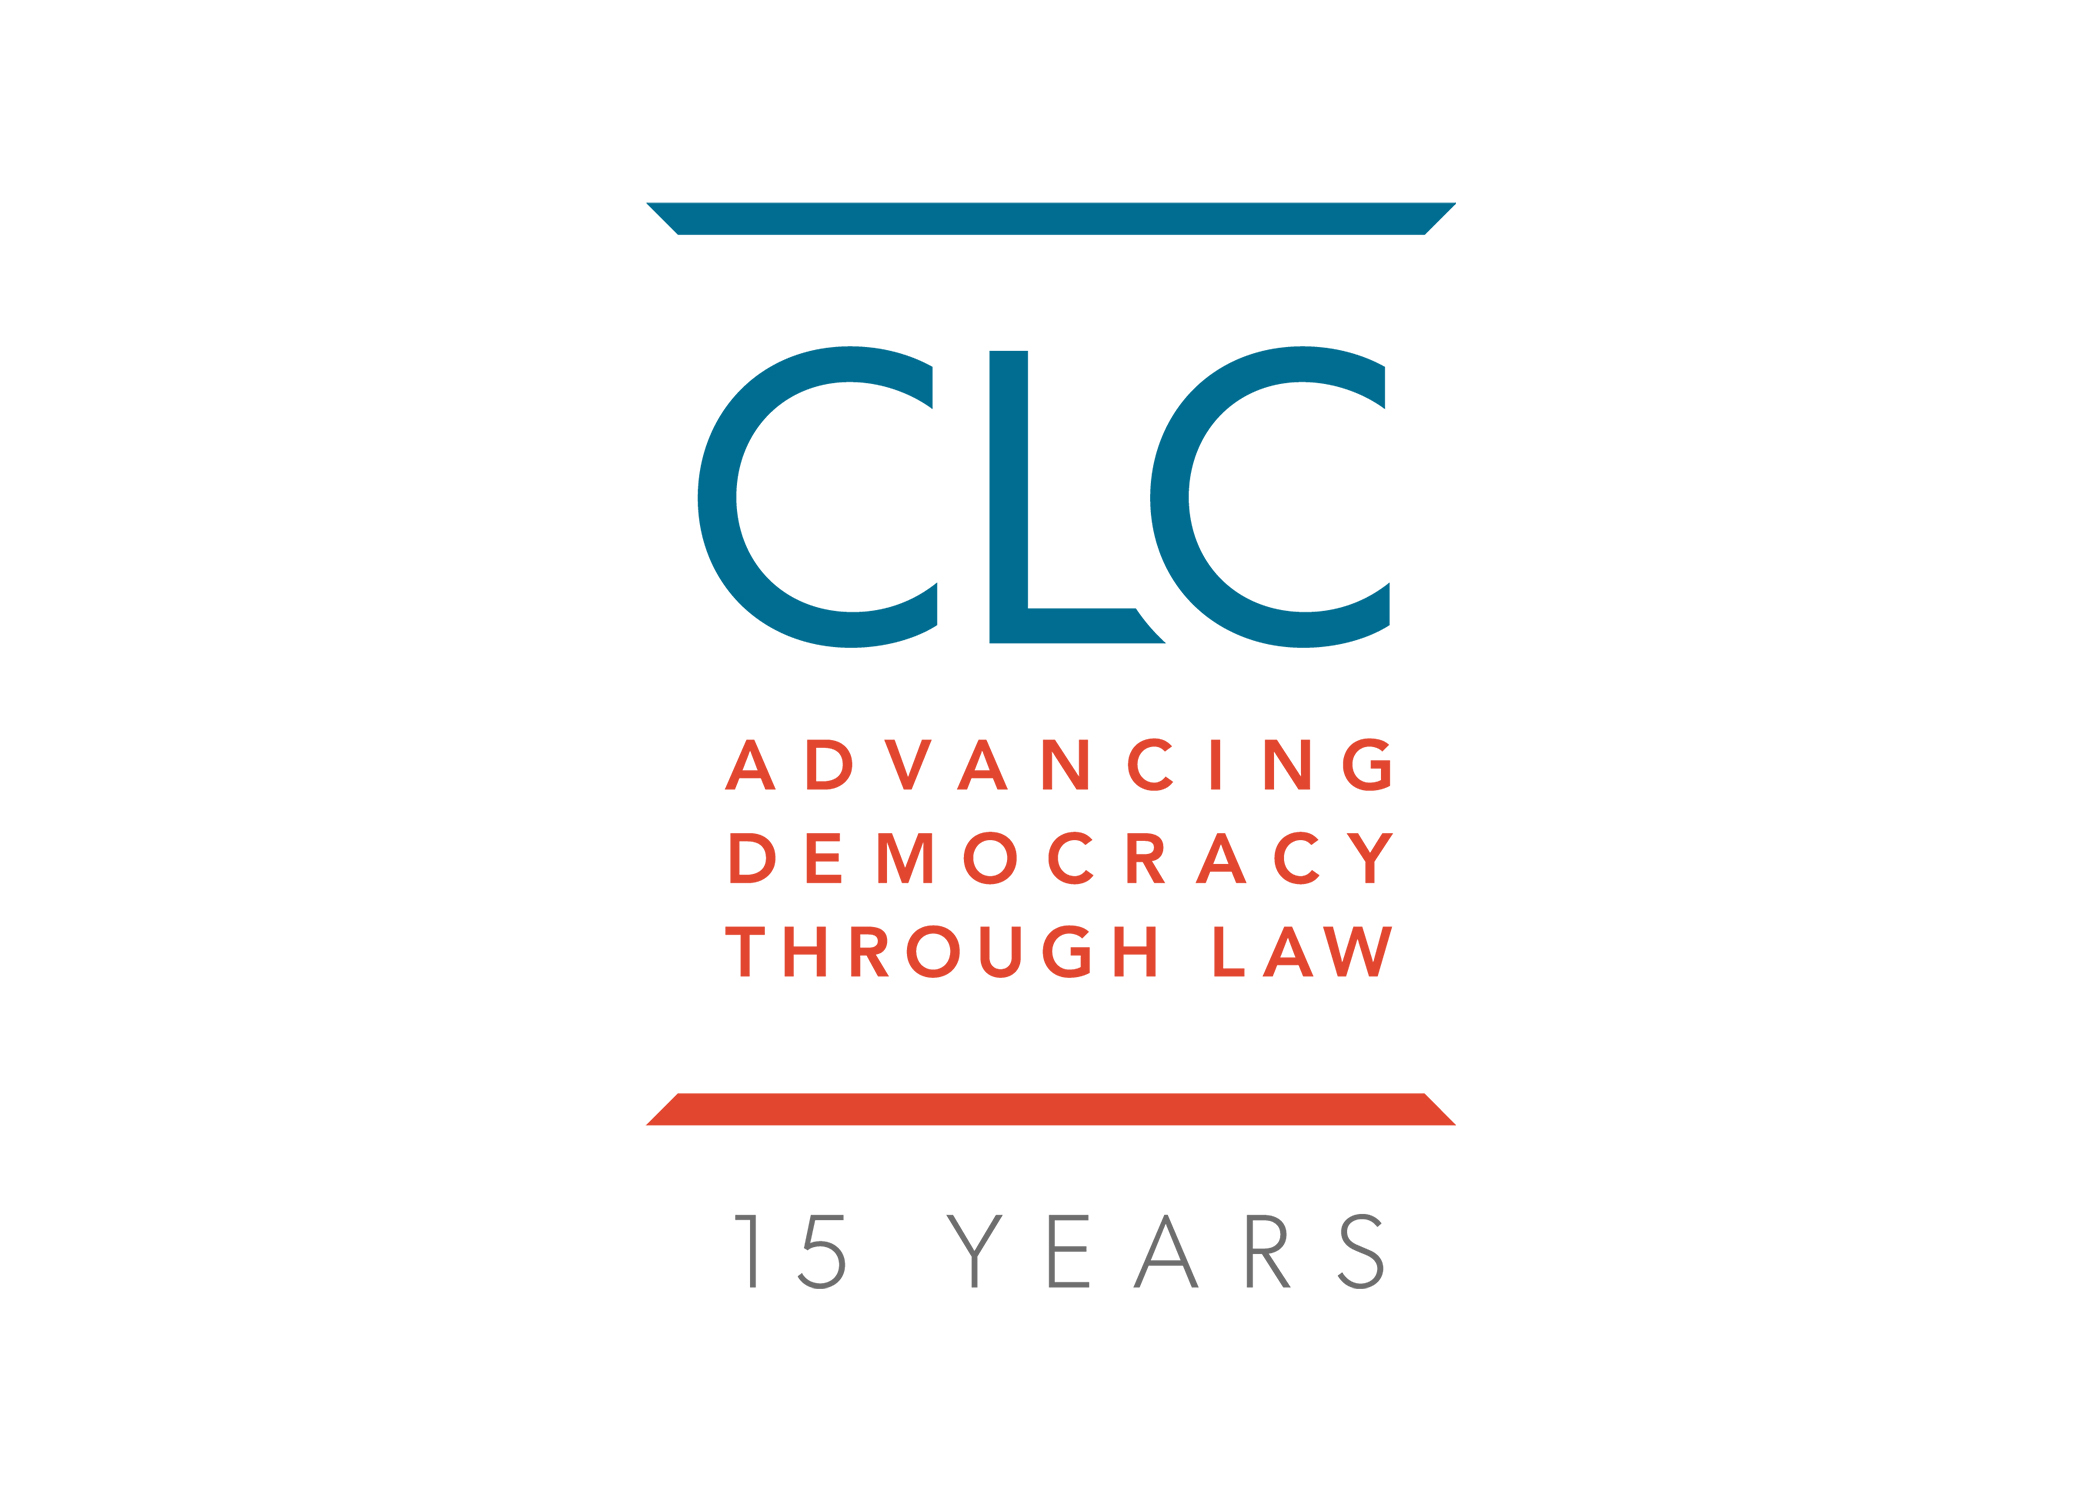 CLC marking 15 years